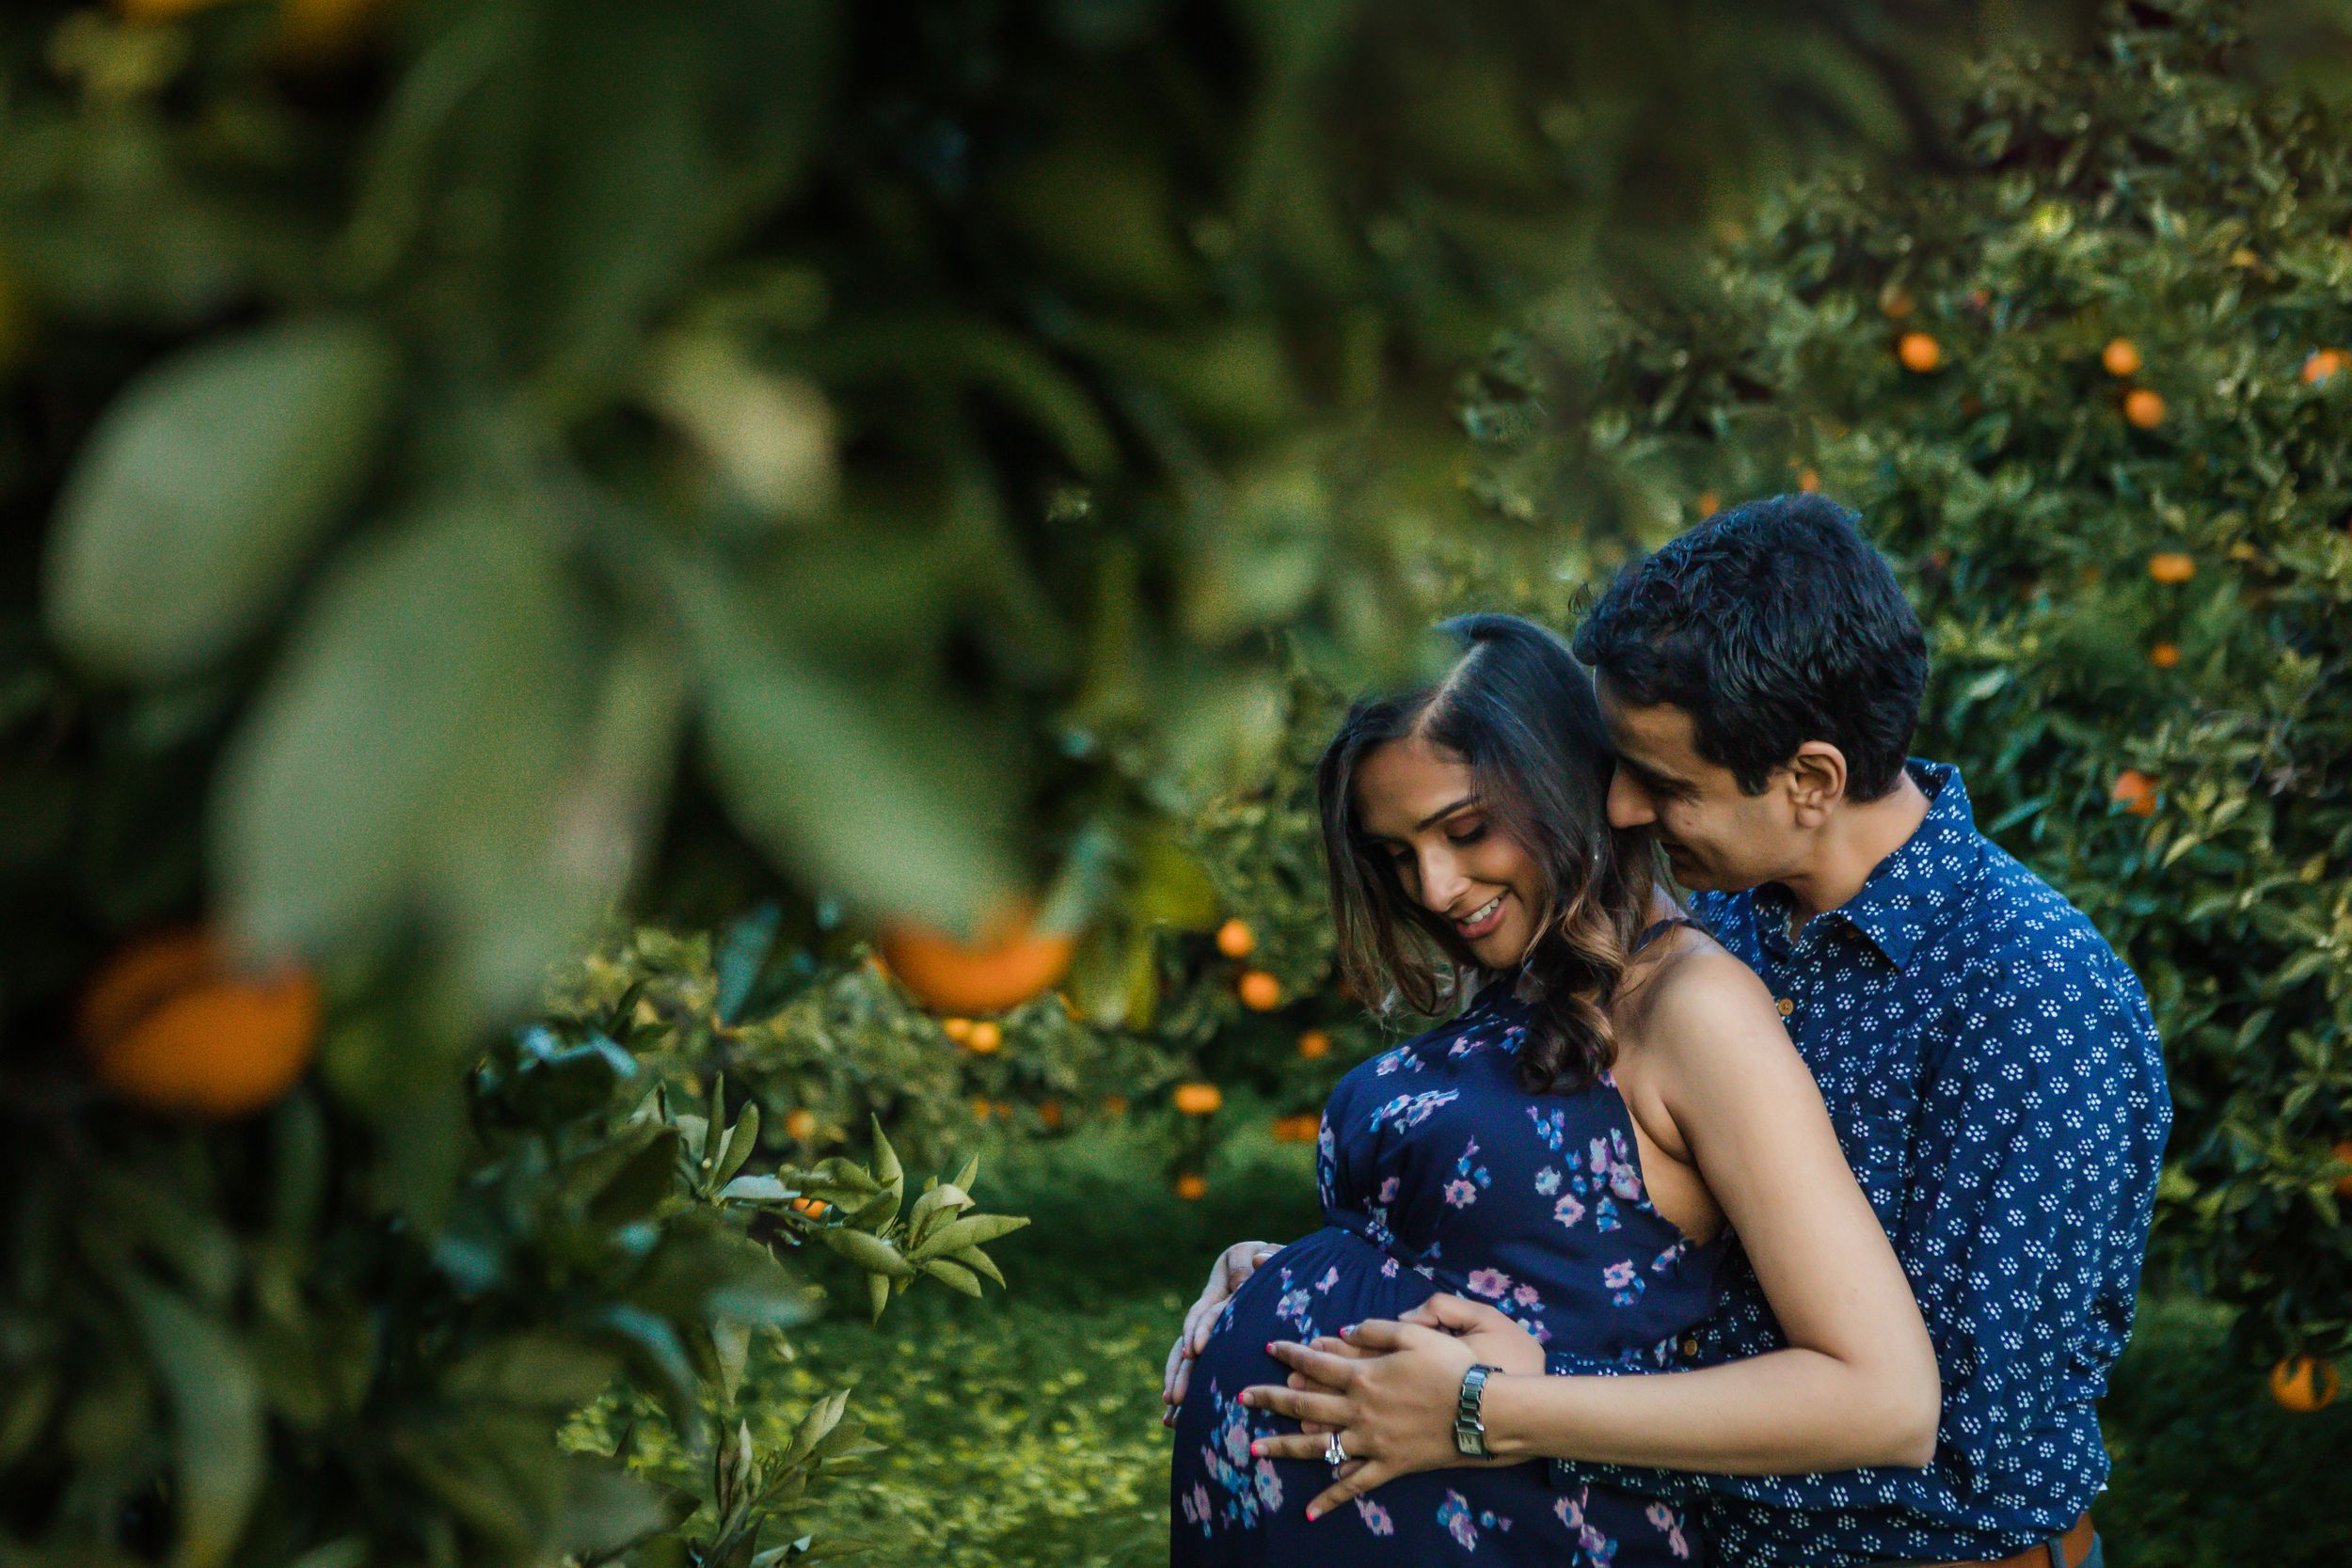 Anita_Barcsa_Photography_Lifestyle_Newborn_Family_Maternity_Photography_Spring_Fertility_Session_Info_San_Francisco_3